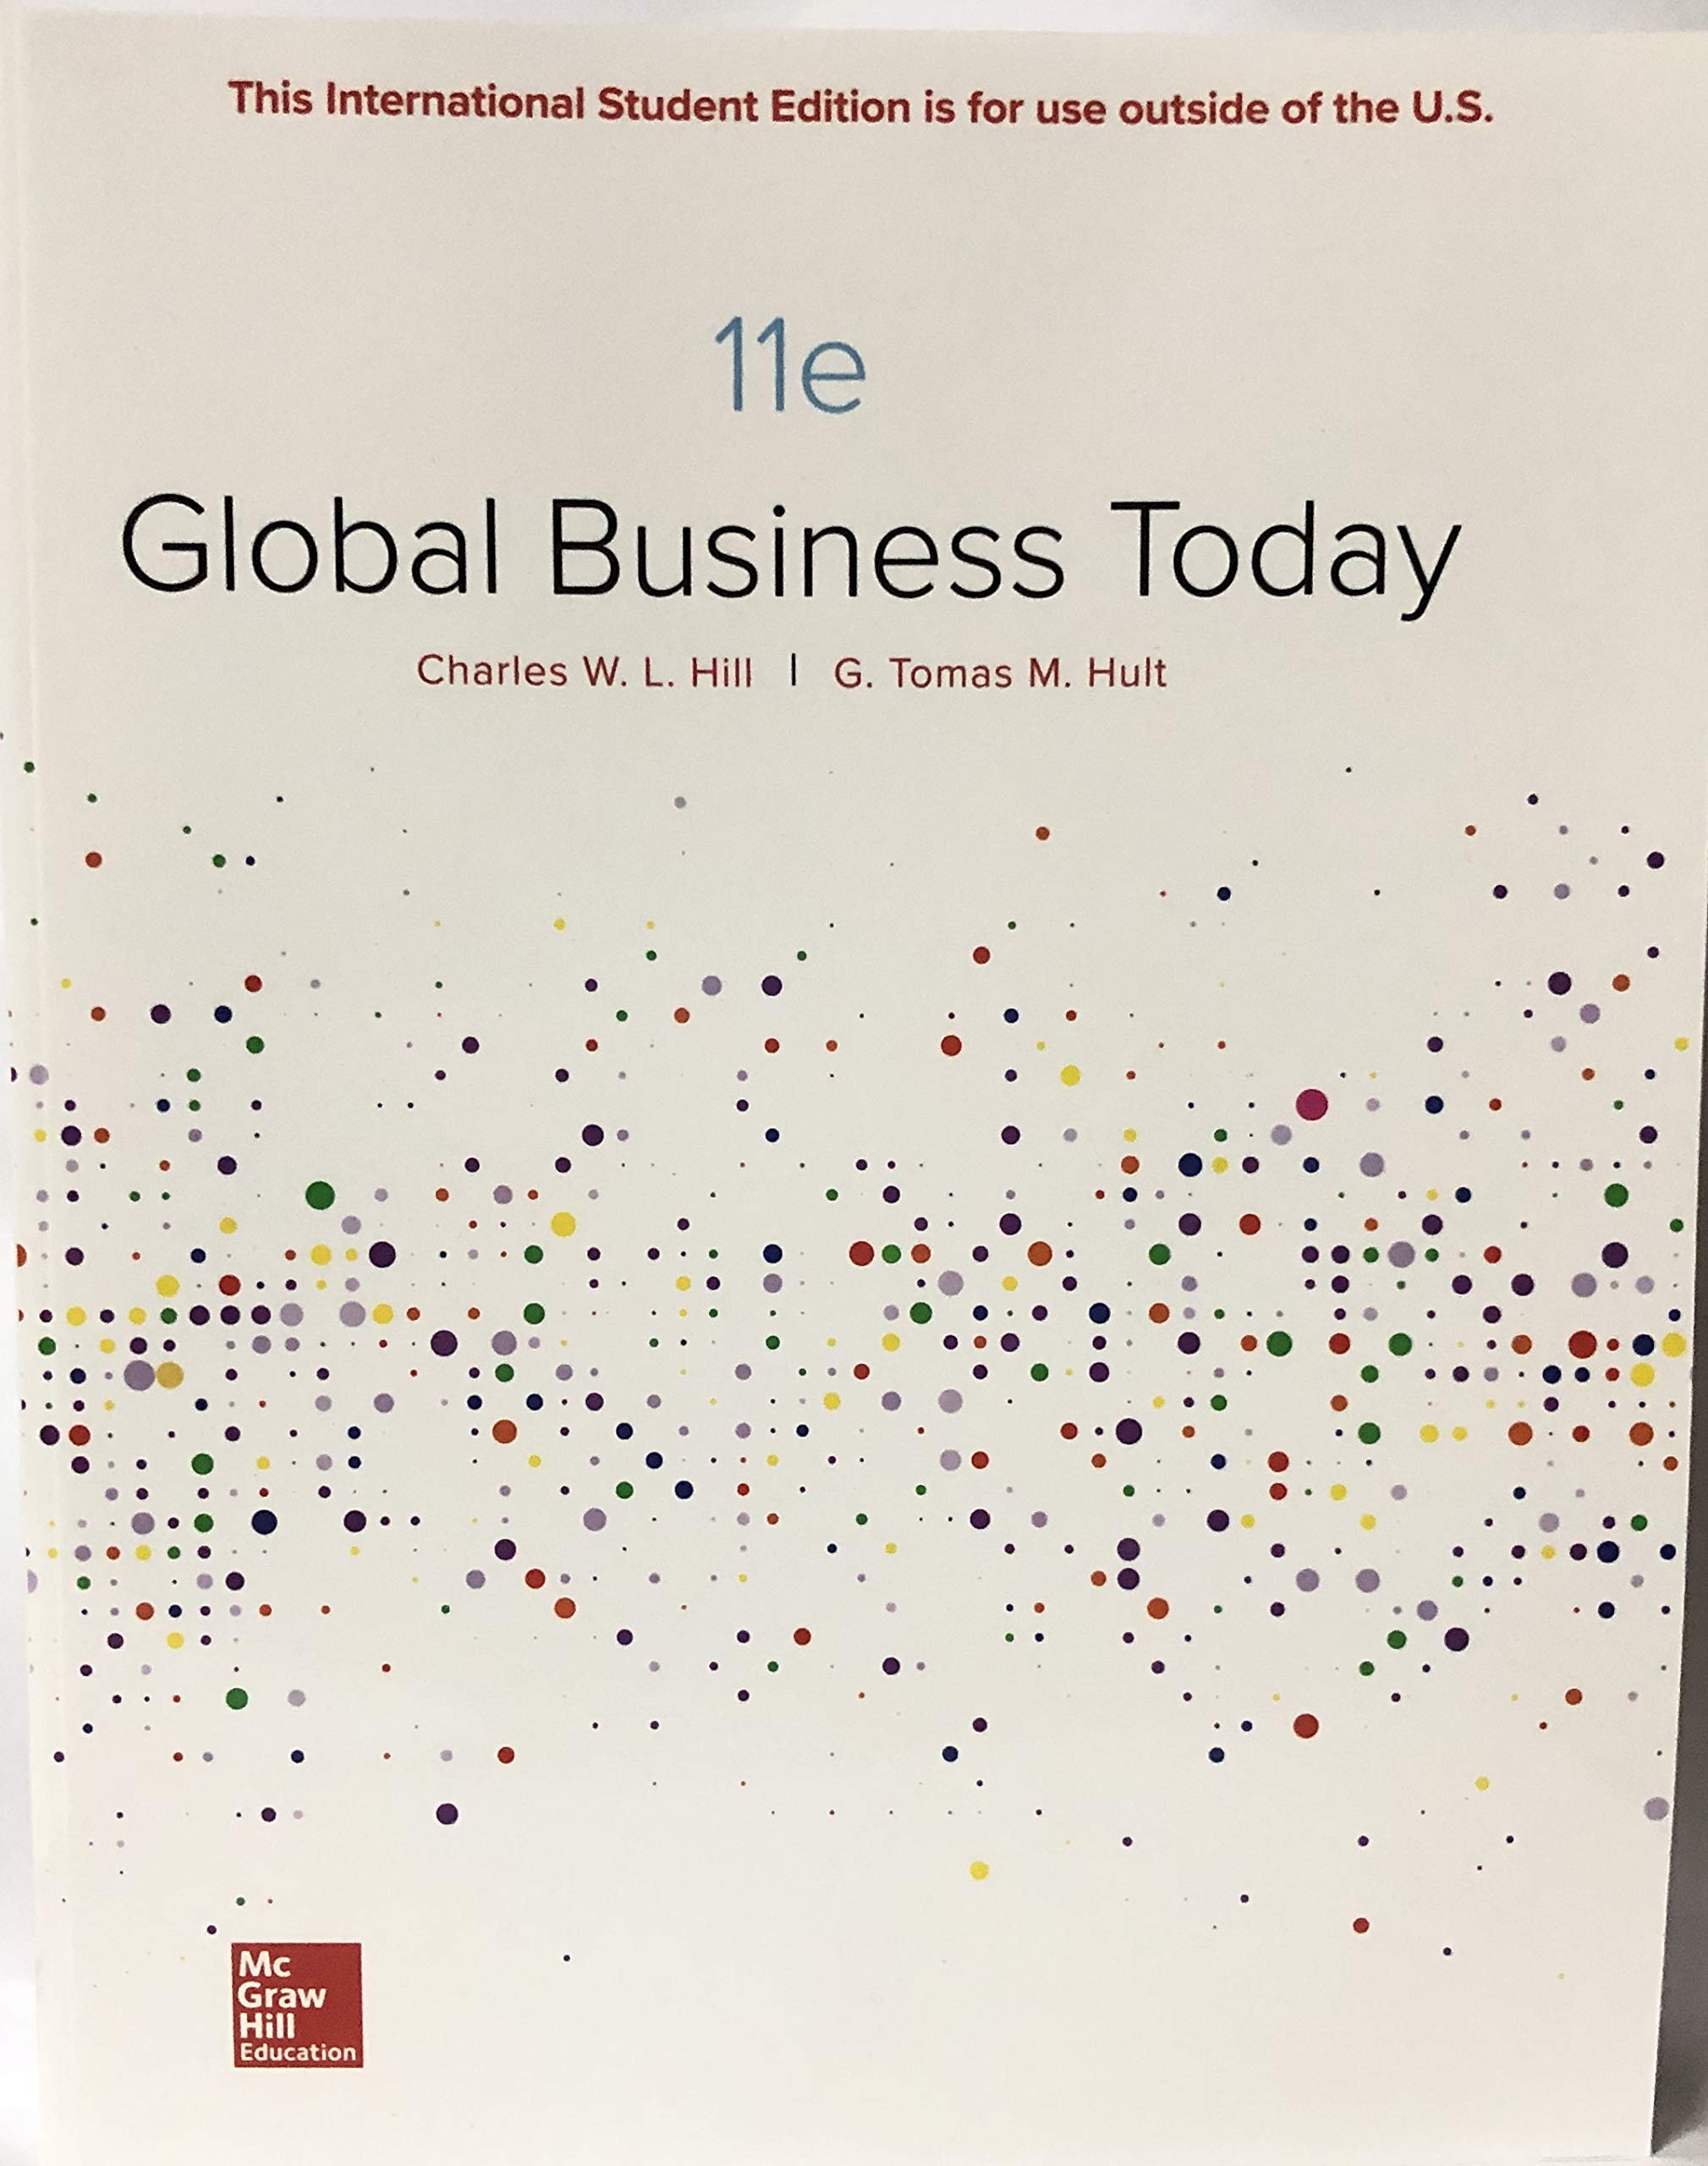 Global Business Today by McGraw-Hill Education